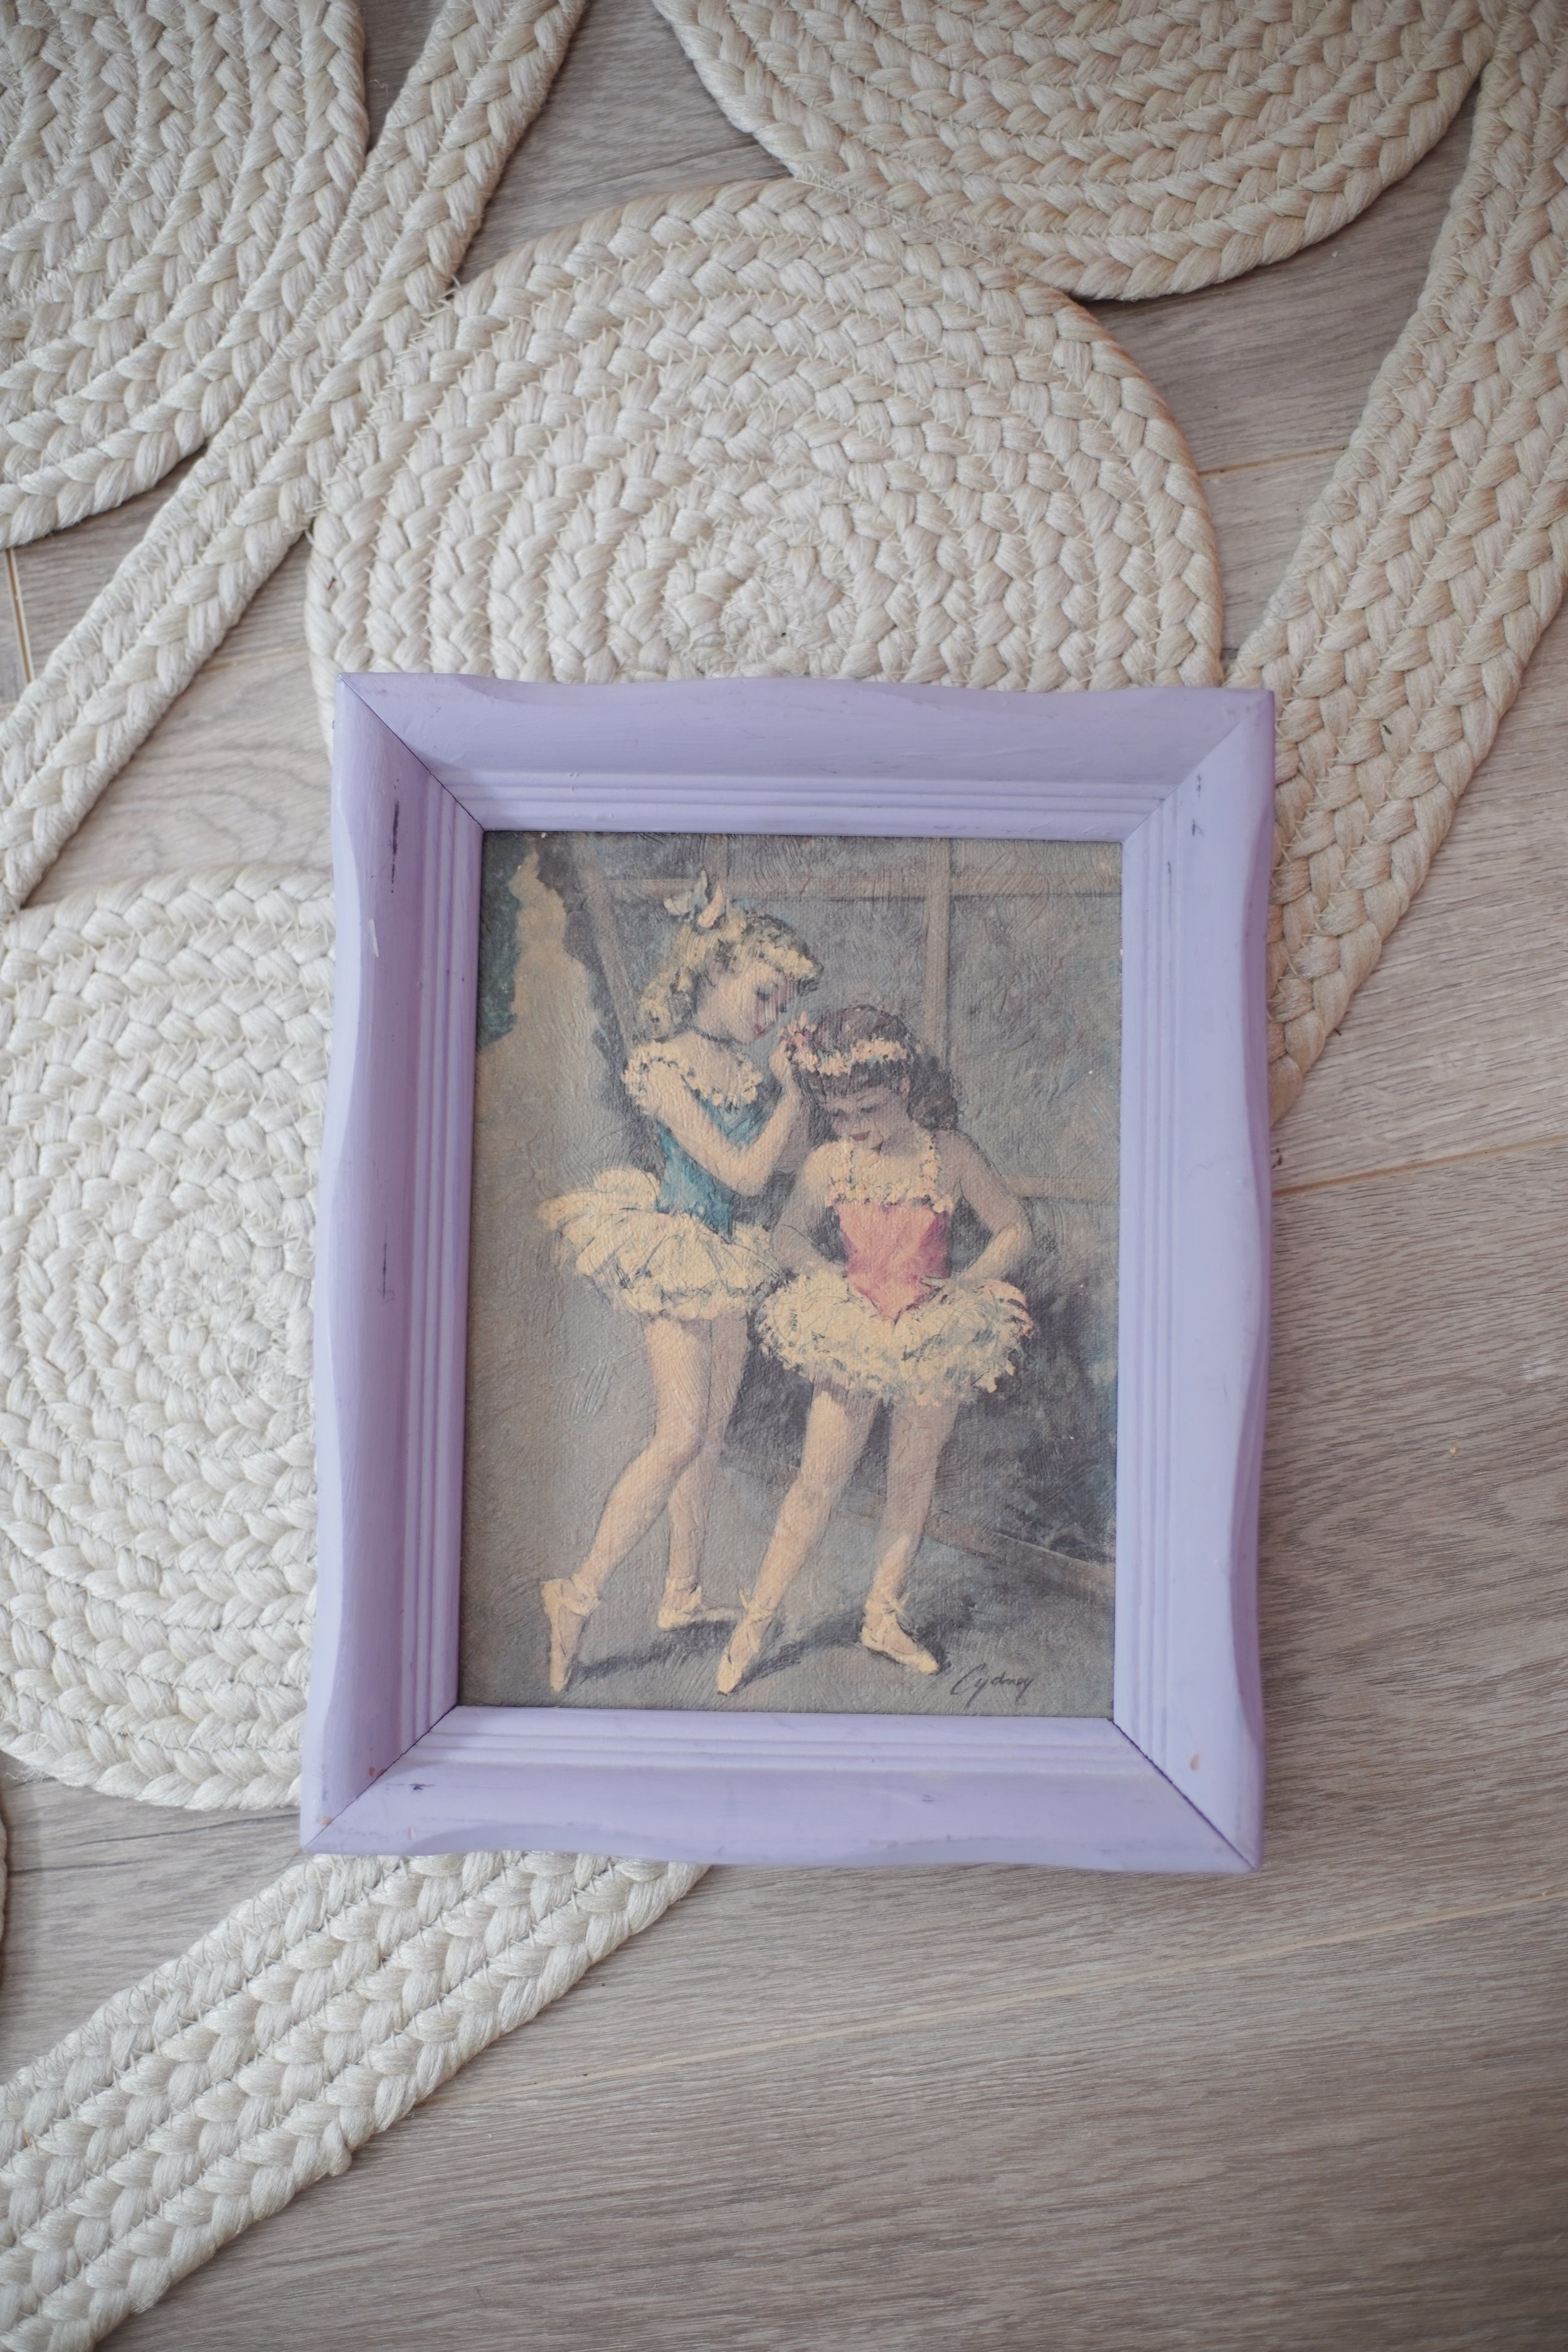 the flea market - My creative and eclectic mother also inspired my love of antiques and vintage as a child. I loved tagging along with her to our local flea market and watching her creative process. Pictured is one of the 1950's ballerina prints (by Cydney Grossman) that I mentioned in the podcast. The frame was probably wood initially, but when we bought it, it was a kind of a 1970's pink. Naturally, we painted it a very 1990's purple, perfect for my room at the time.